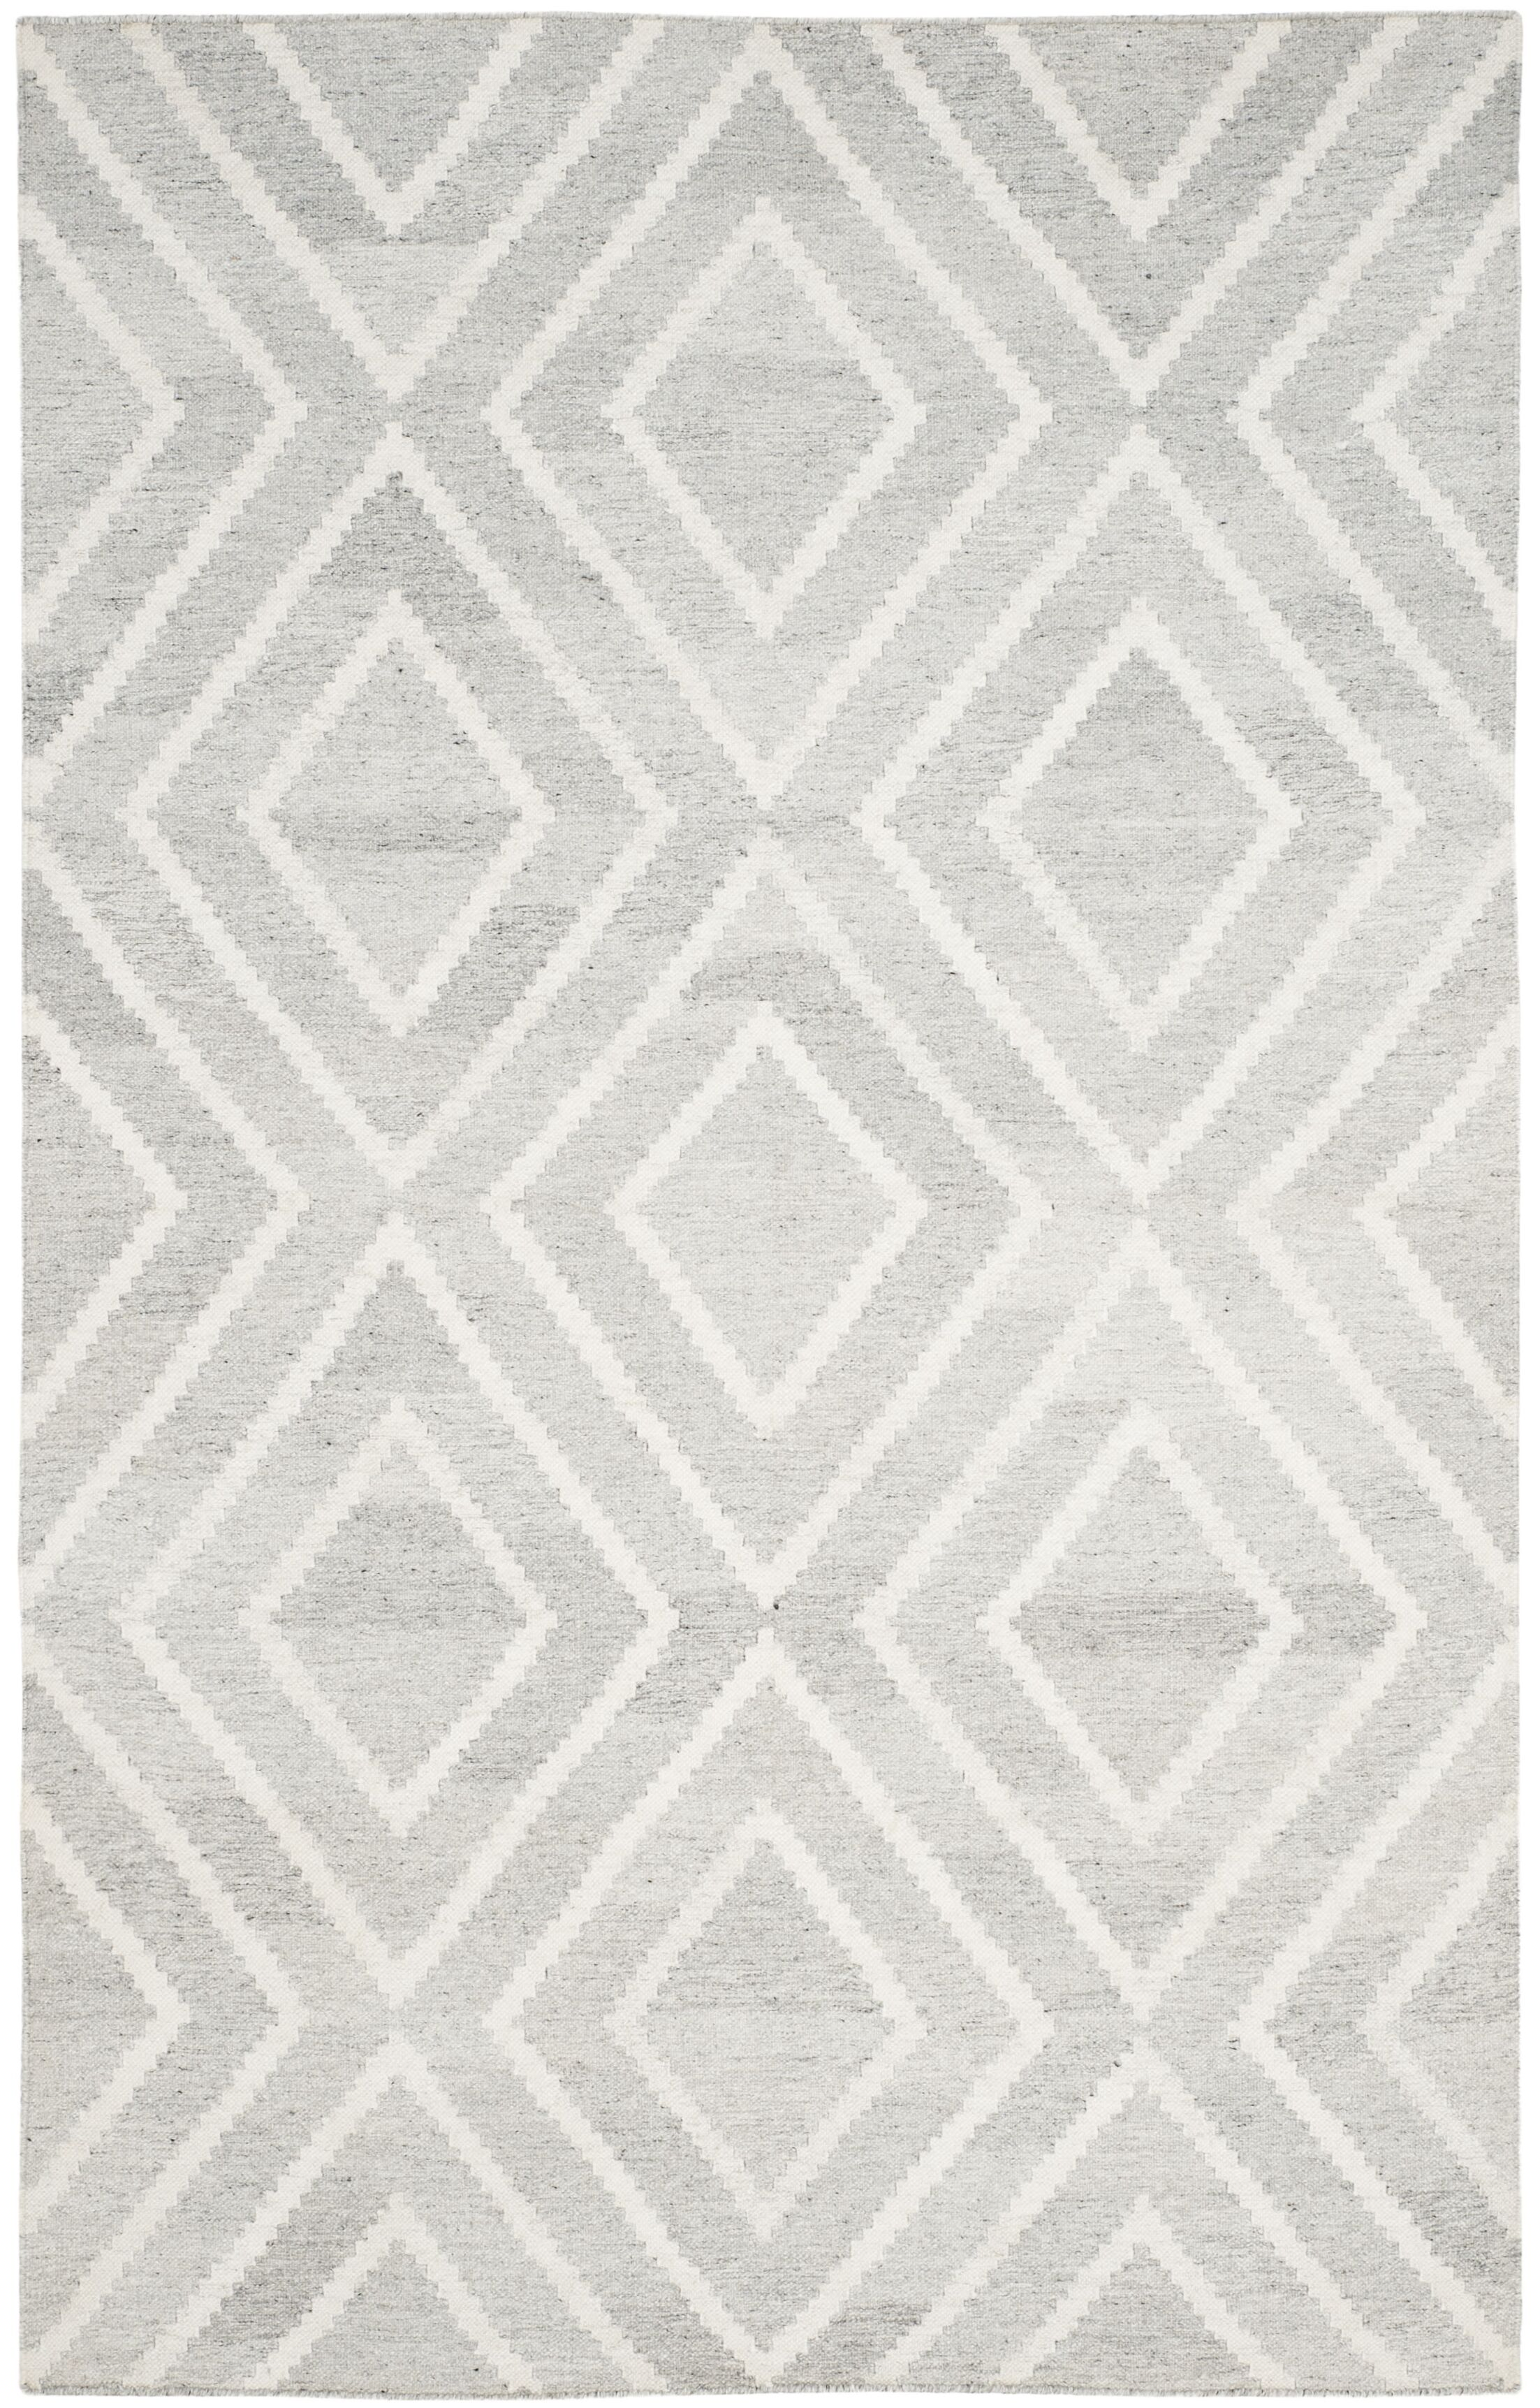 Mata Hand Woven Wool Gray/Ivory Area Rug Rug Size: Rectangle 5' x 8'